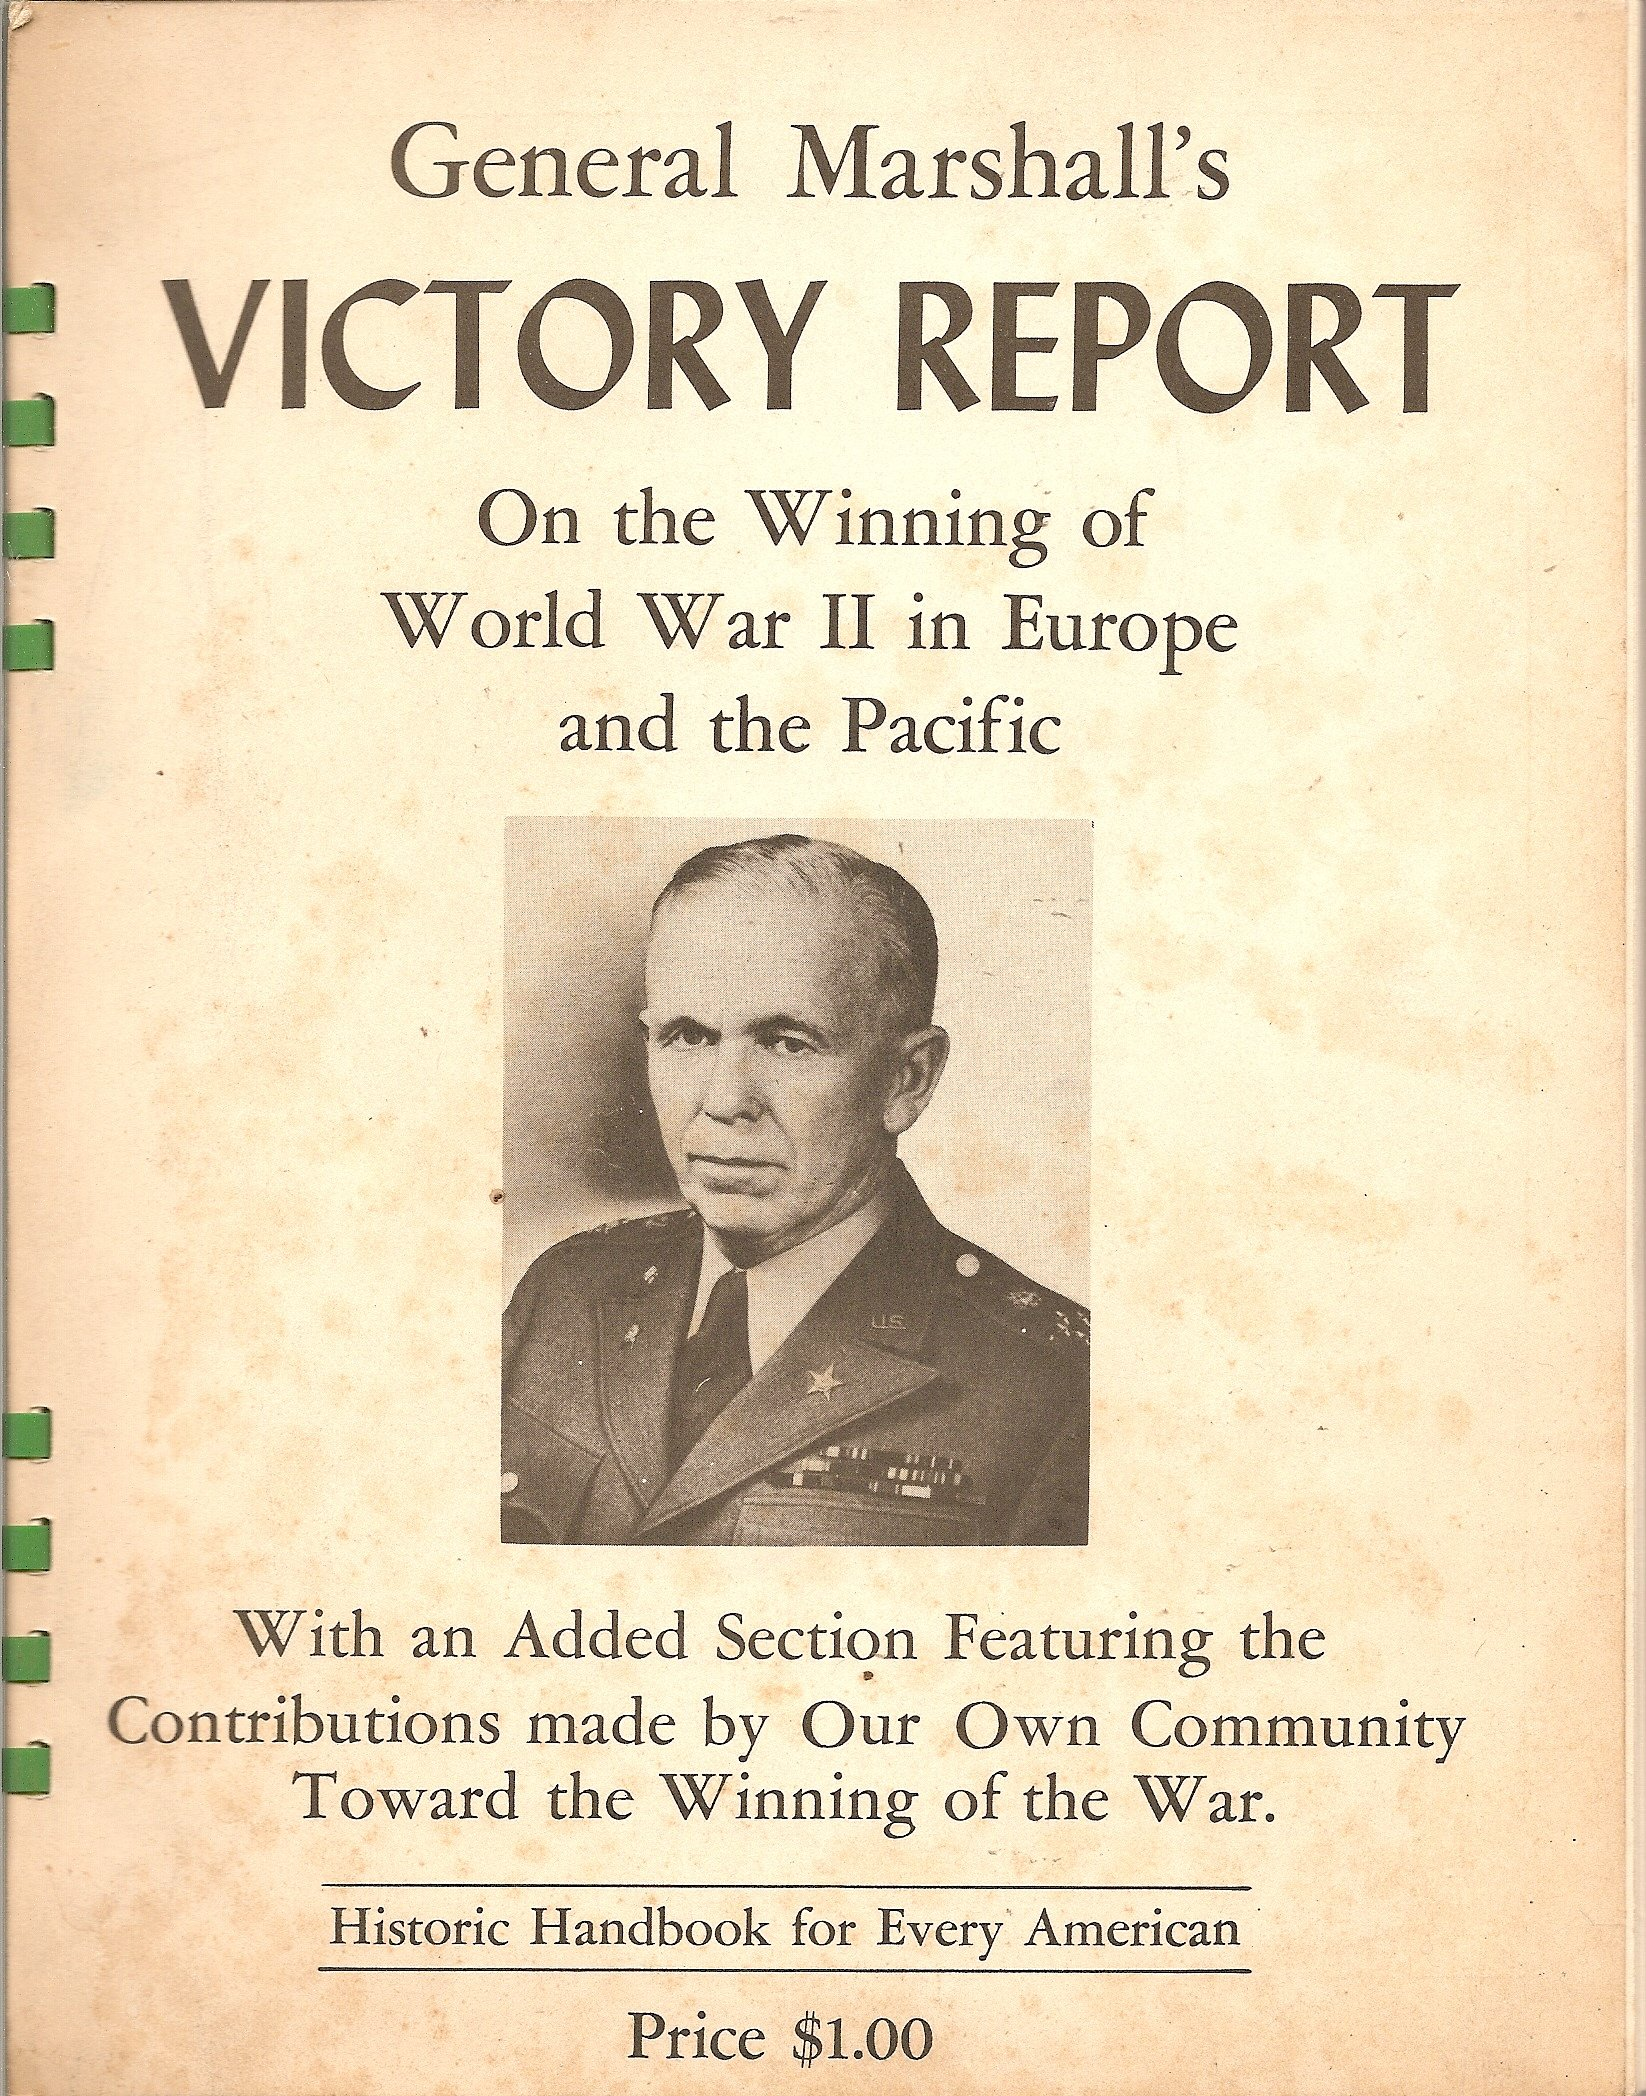 General Marshall's Victory Report on the Winning of World War II in